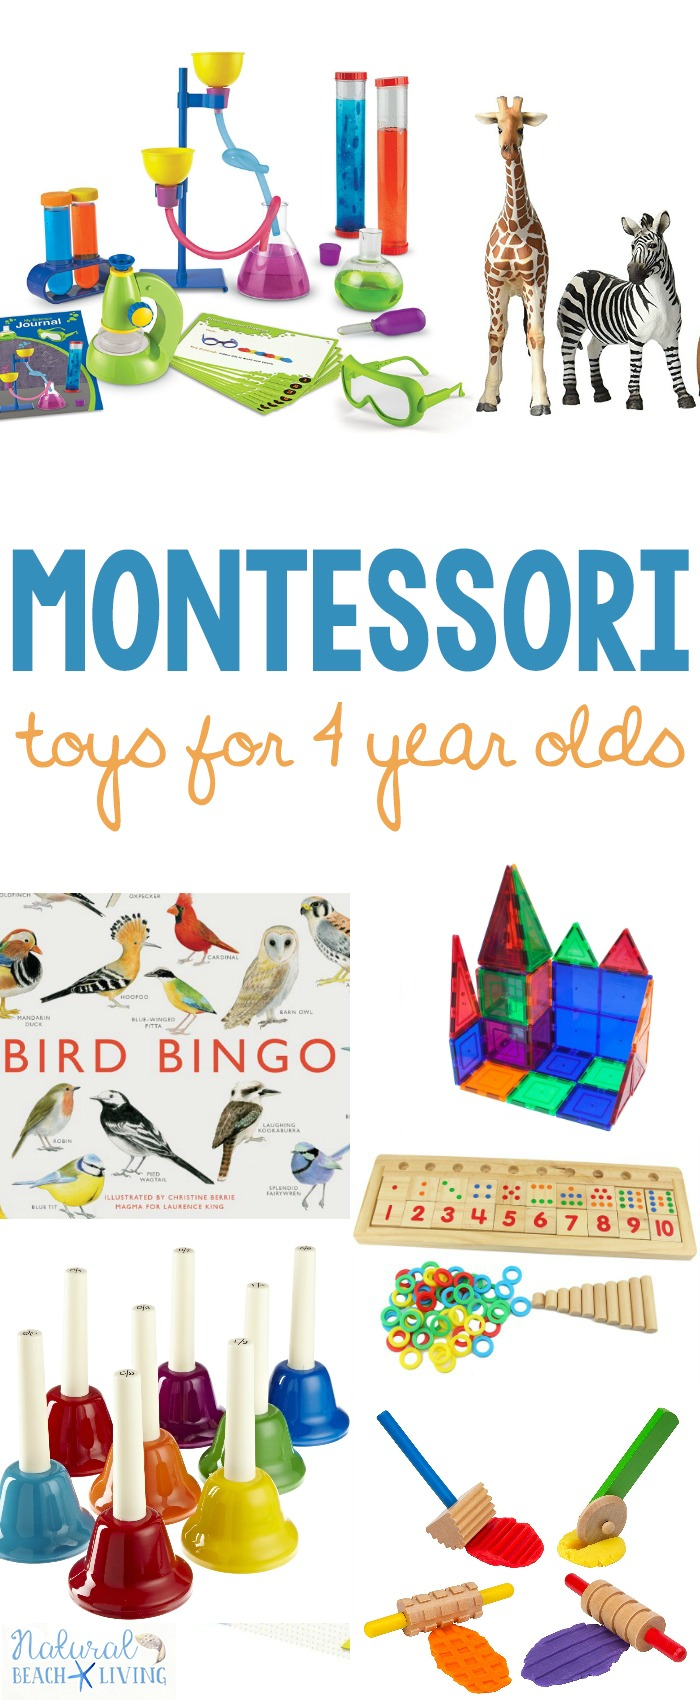 The Ultimate Guide for The Best Montessori Toys for 4 Year ...